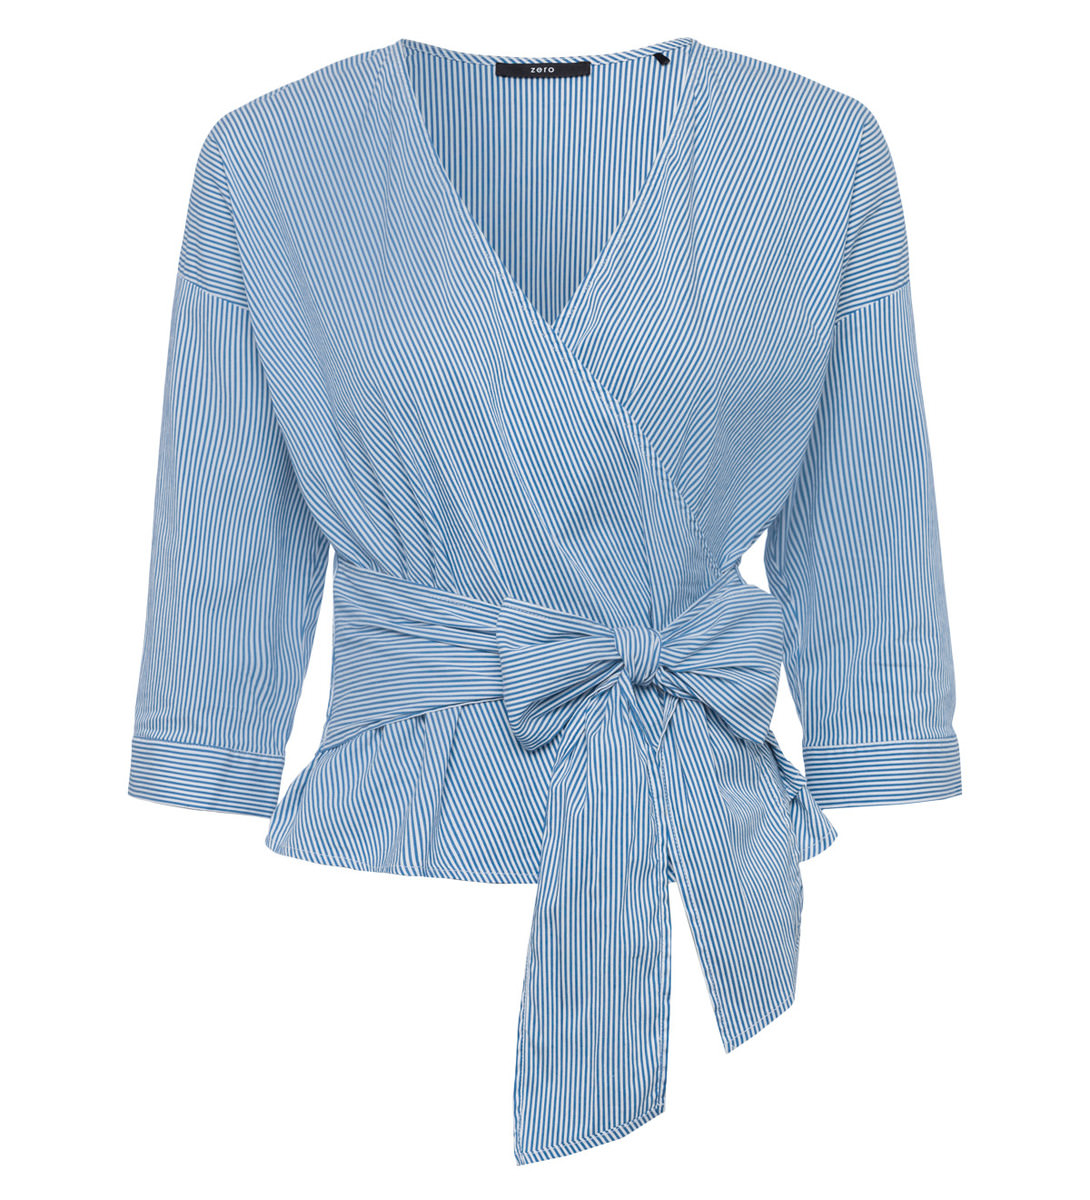 Bluse im Wickel-Look in water blue